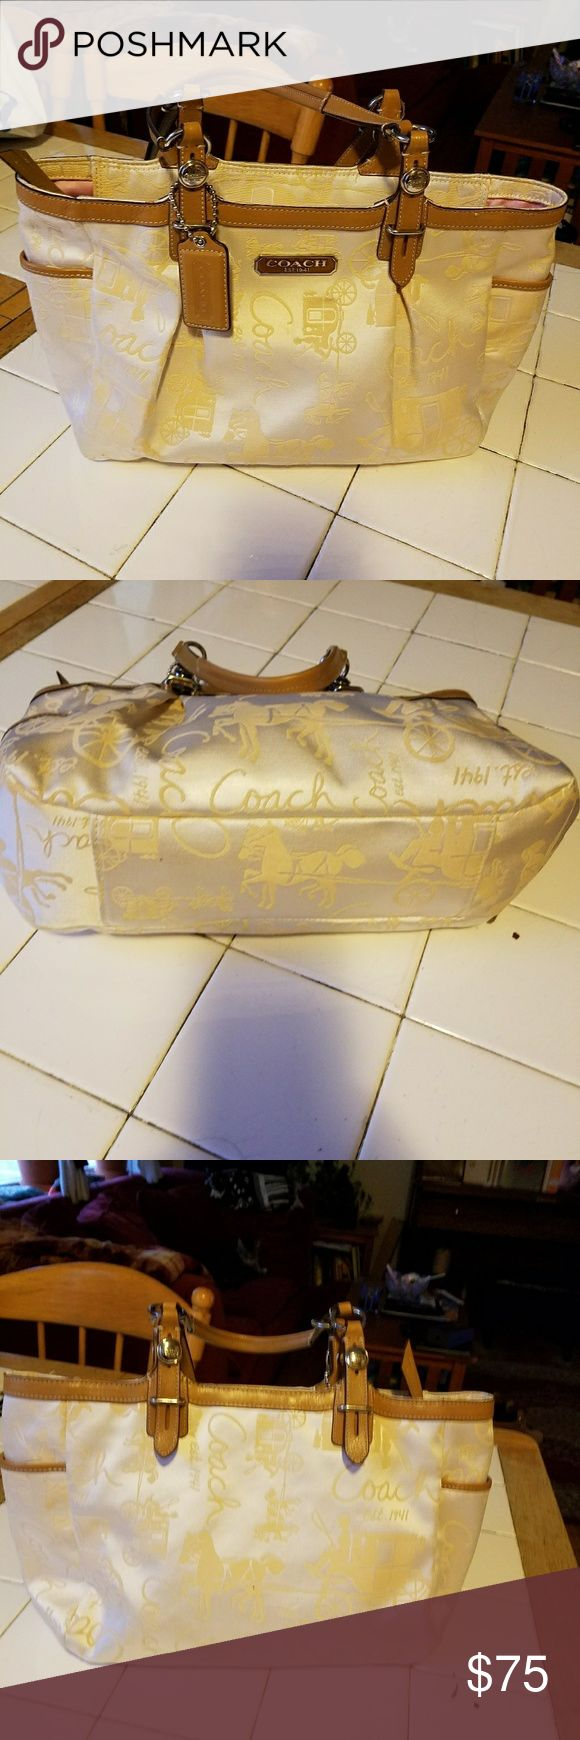 Coach handbag EUC authentuc Coach handbag with roomy interior pocket and zipper. Coach Bags Satchels